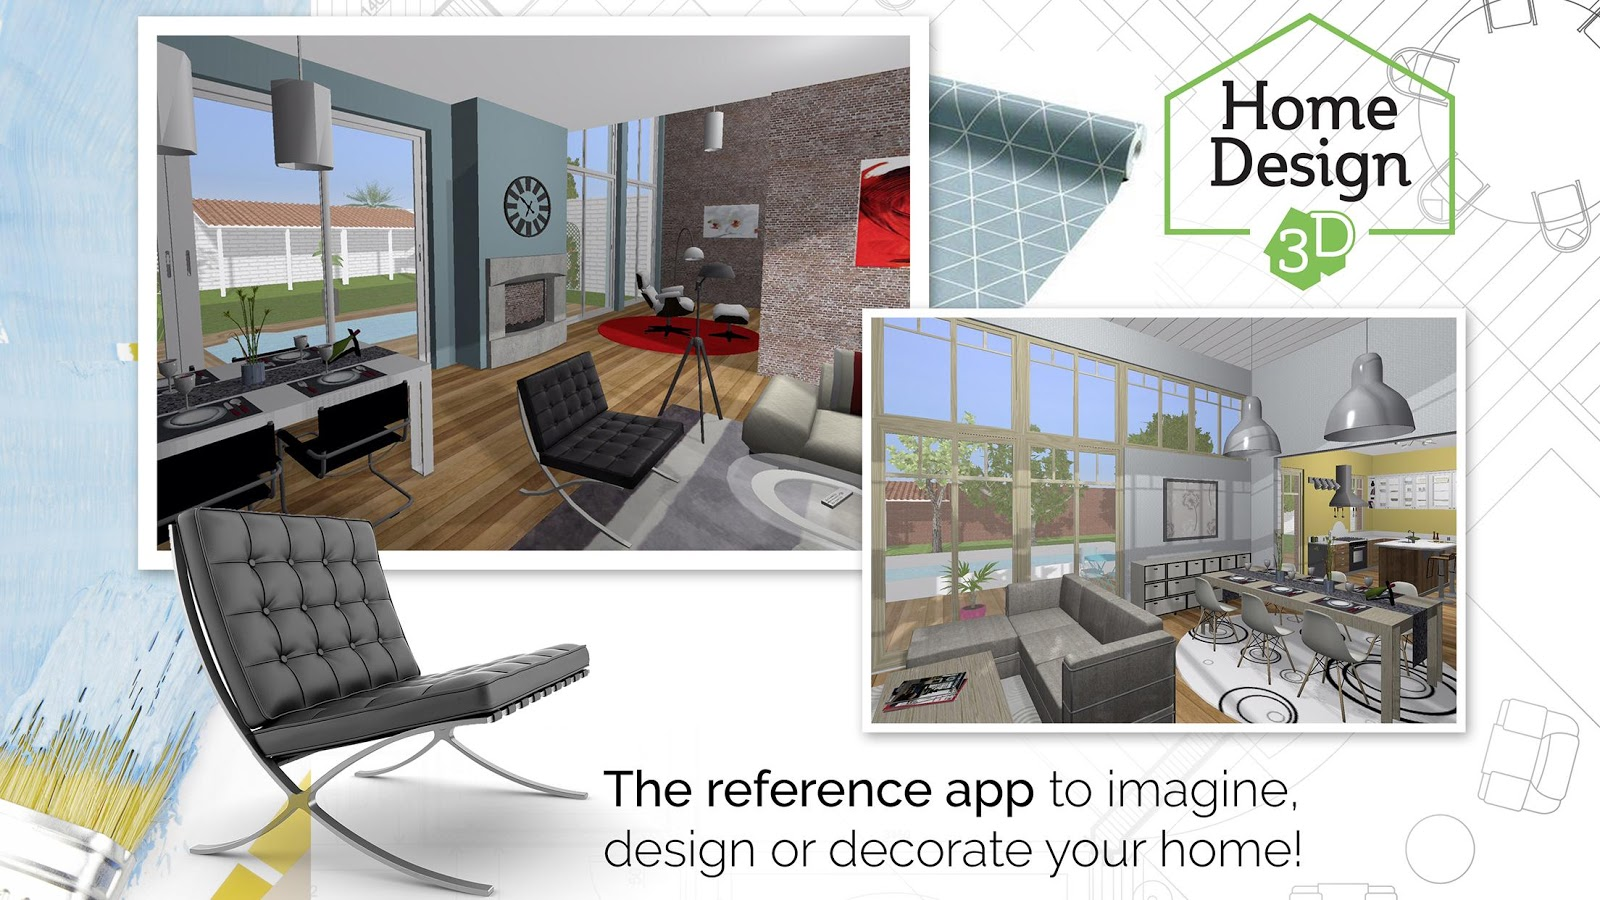 Home design 3d freemium android apps on google play for Design your home games